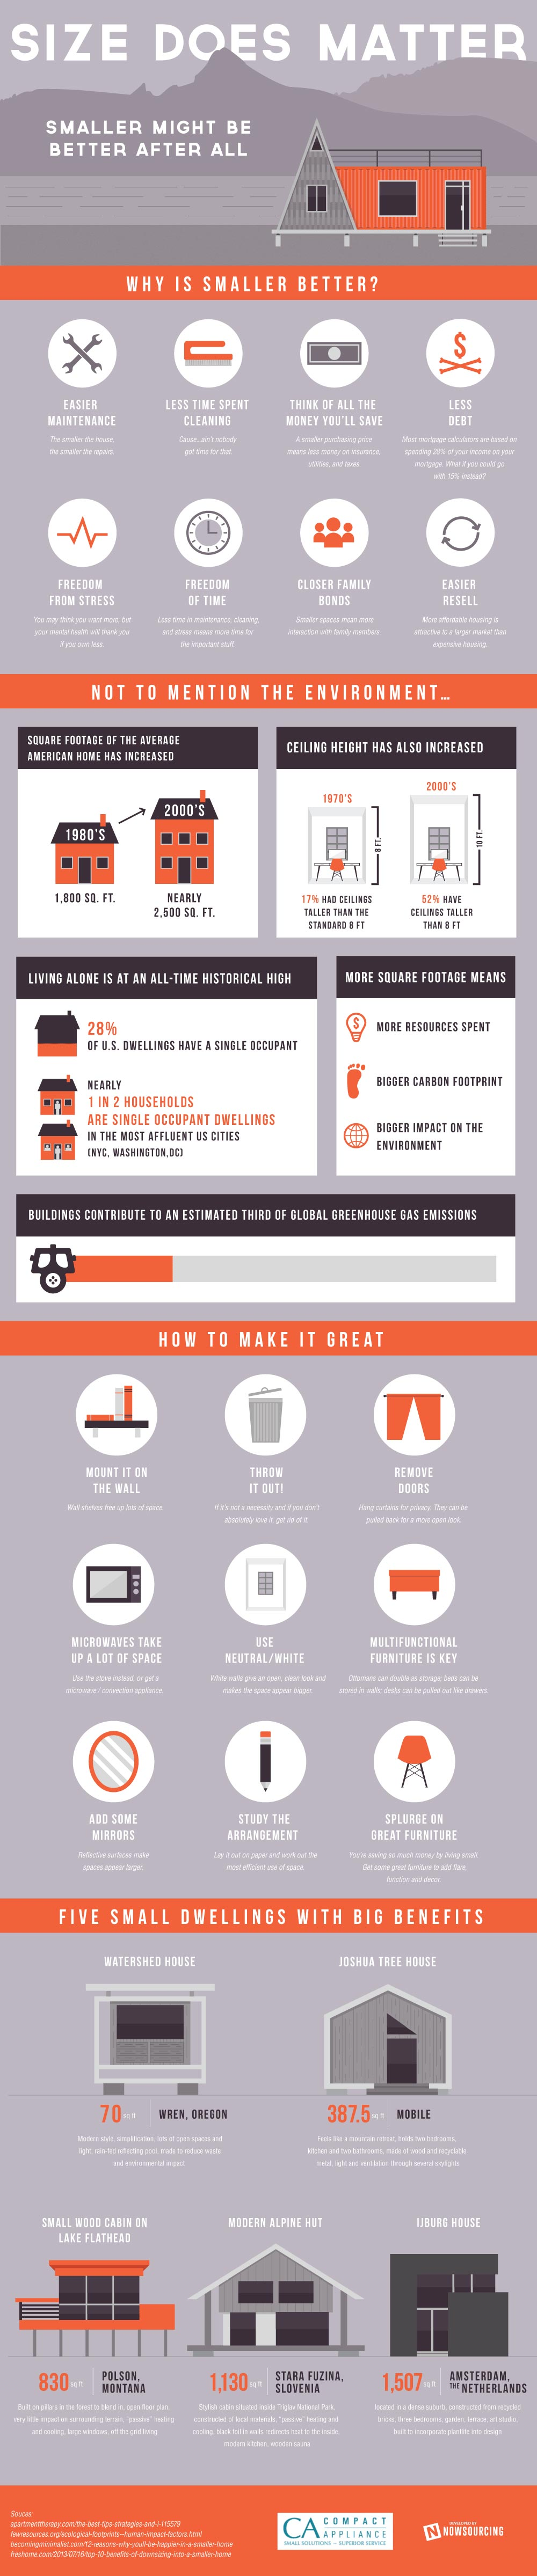 compact_living_infographic